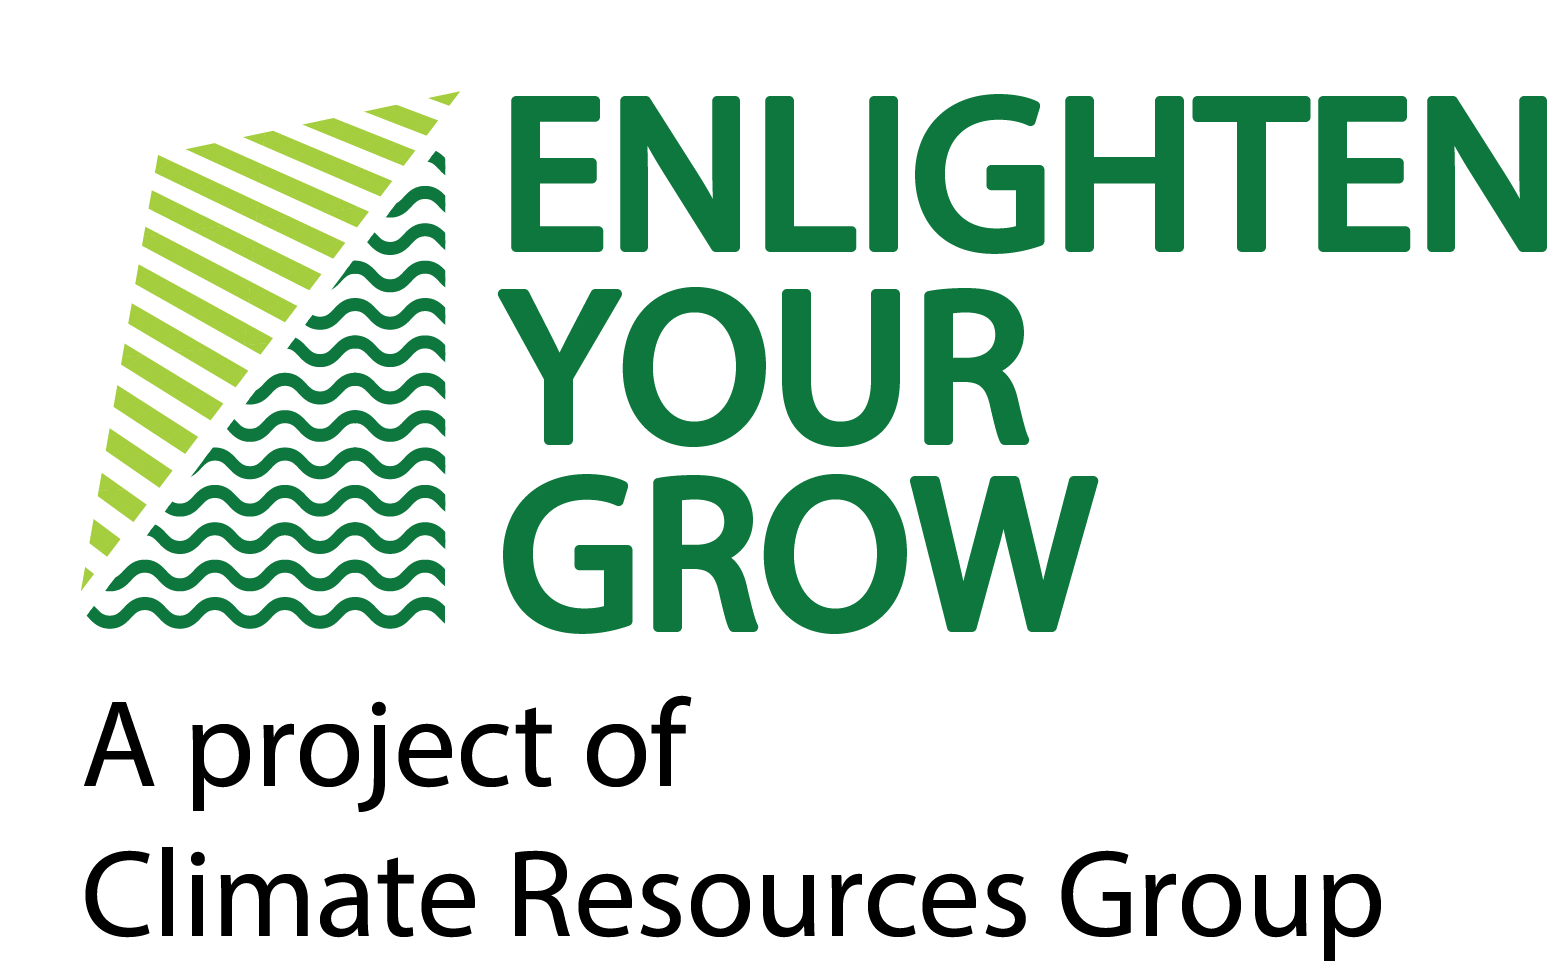 Enlighten Your Grow